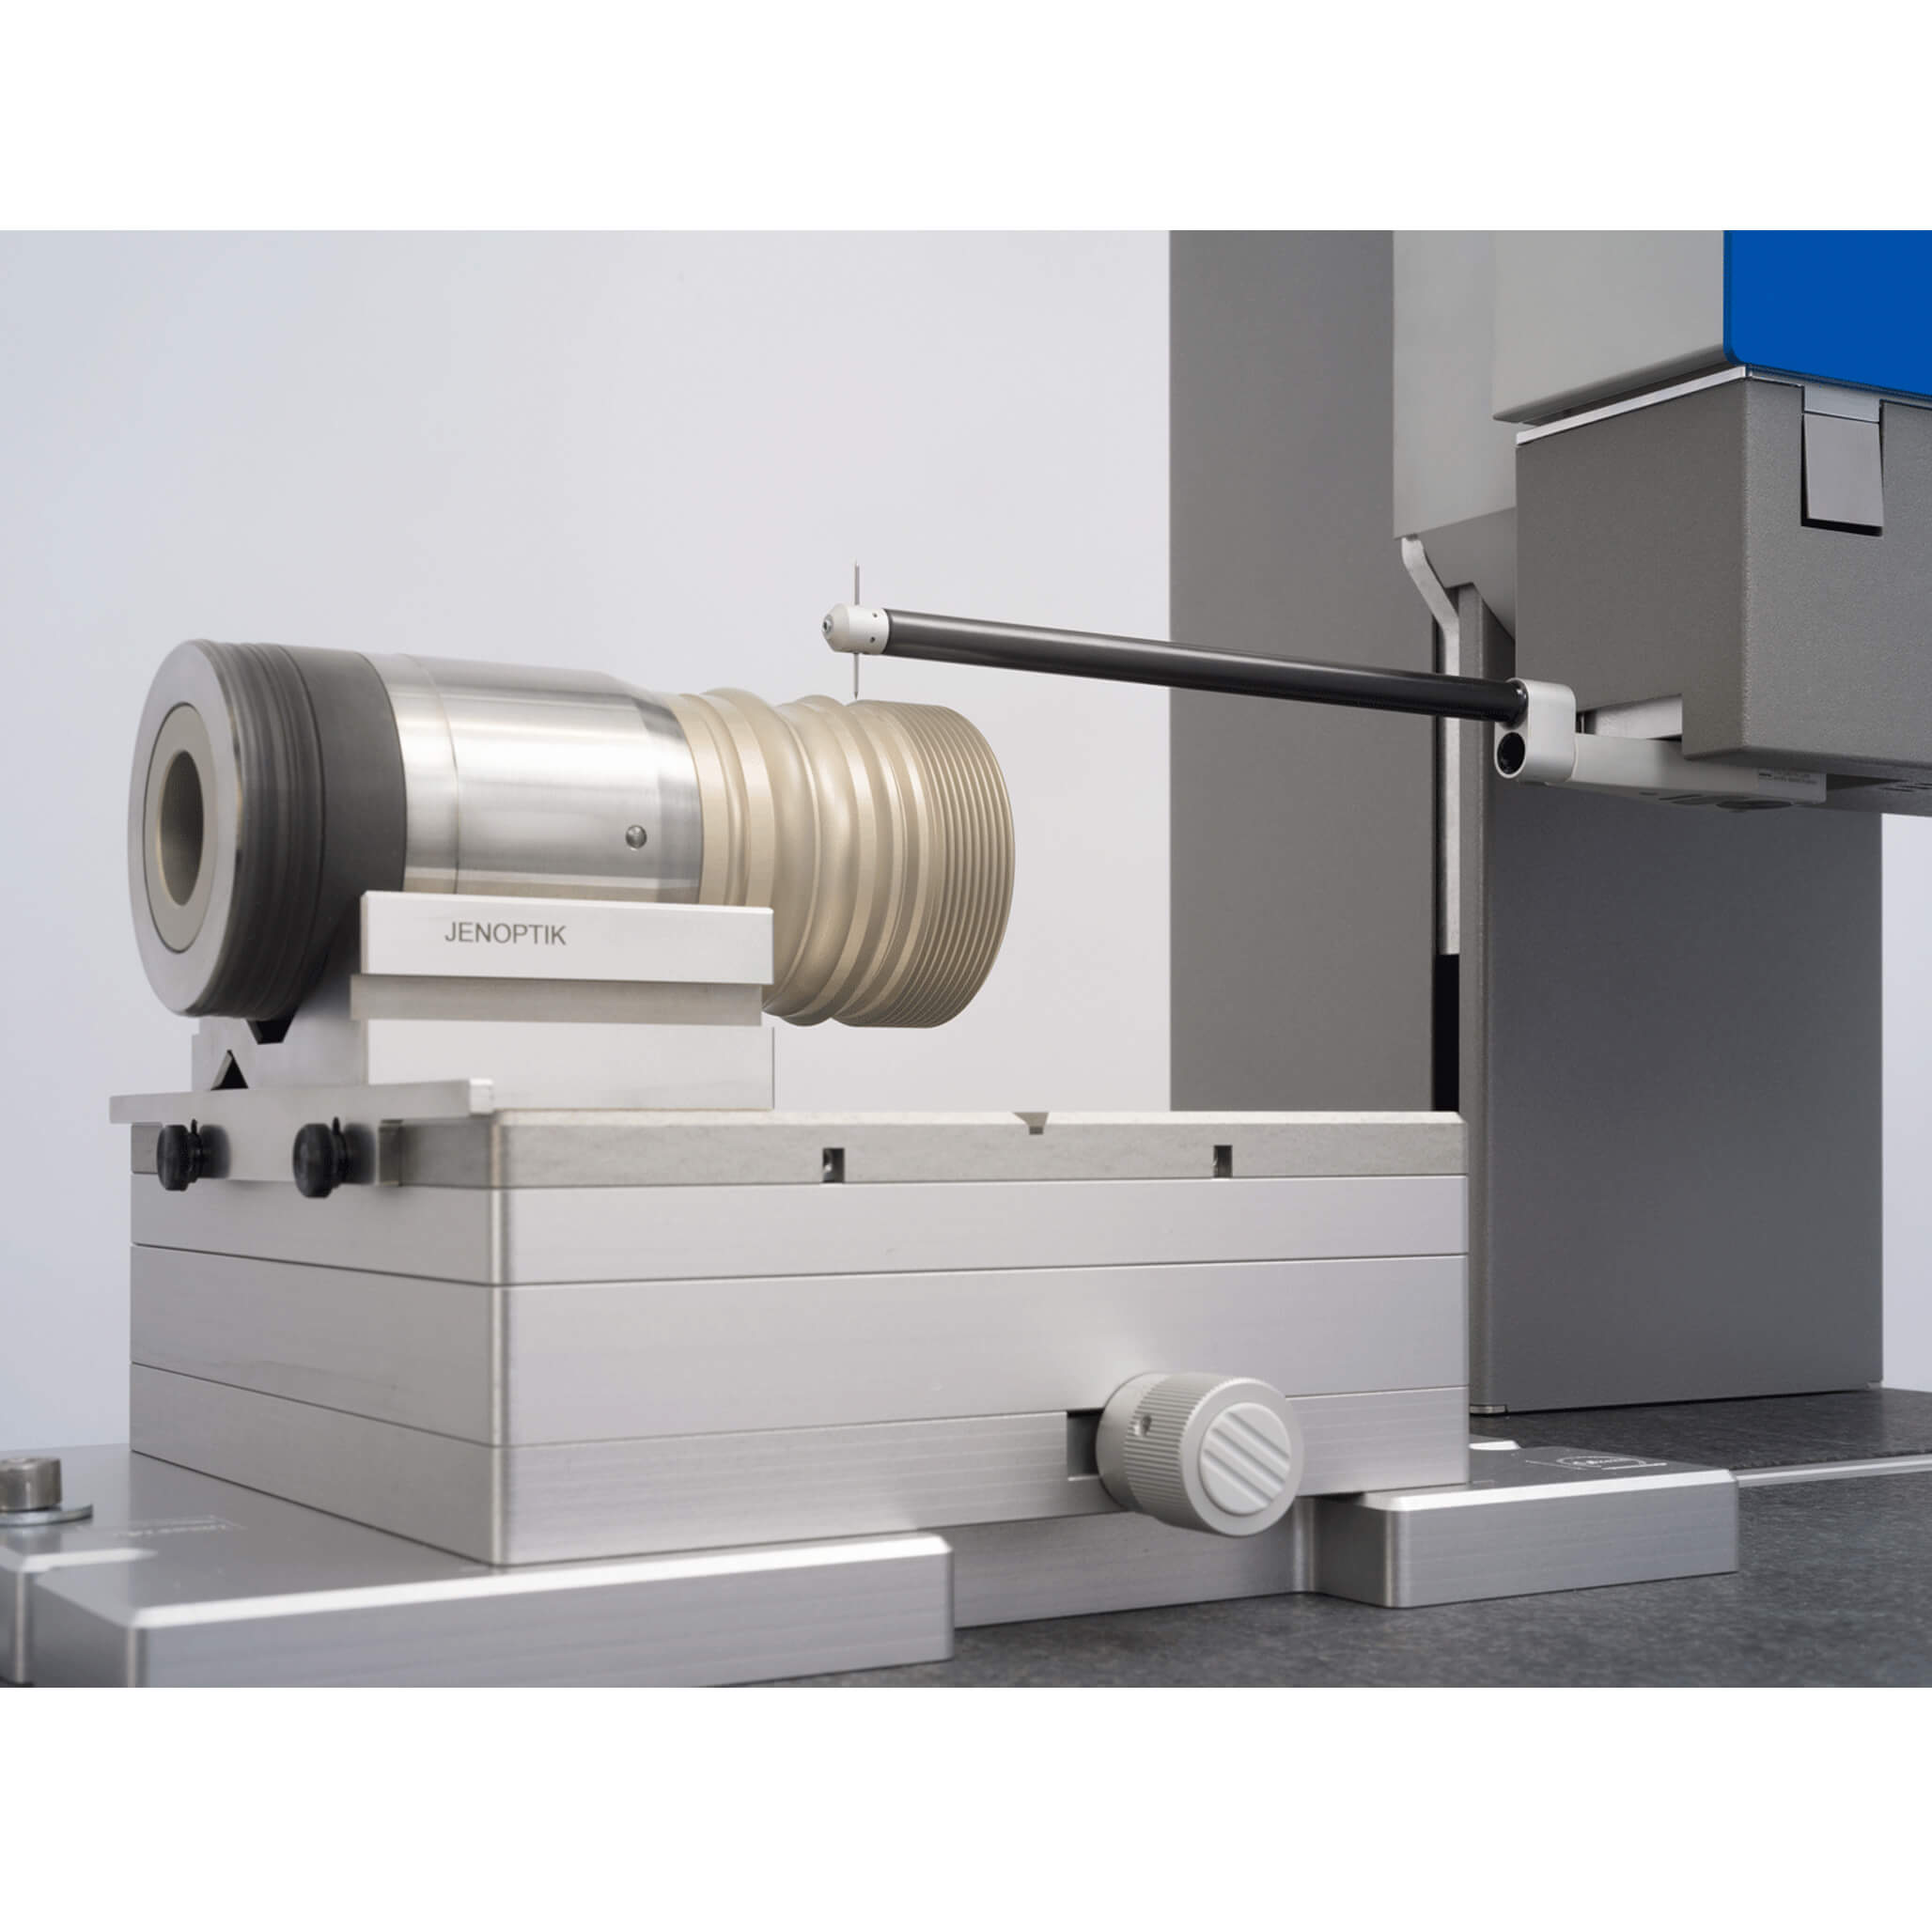 W800 roughness and contour measurement probe